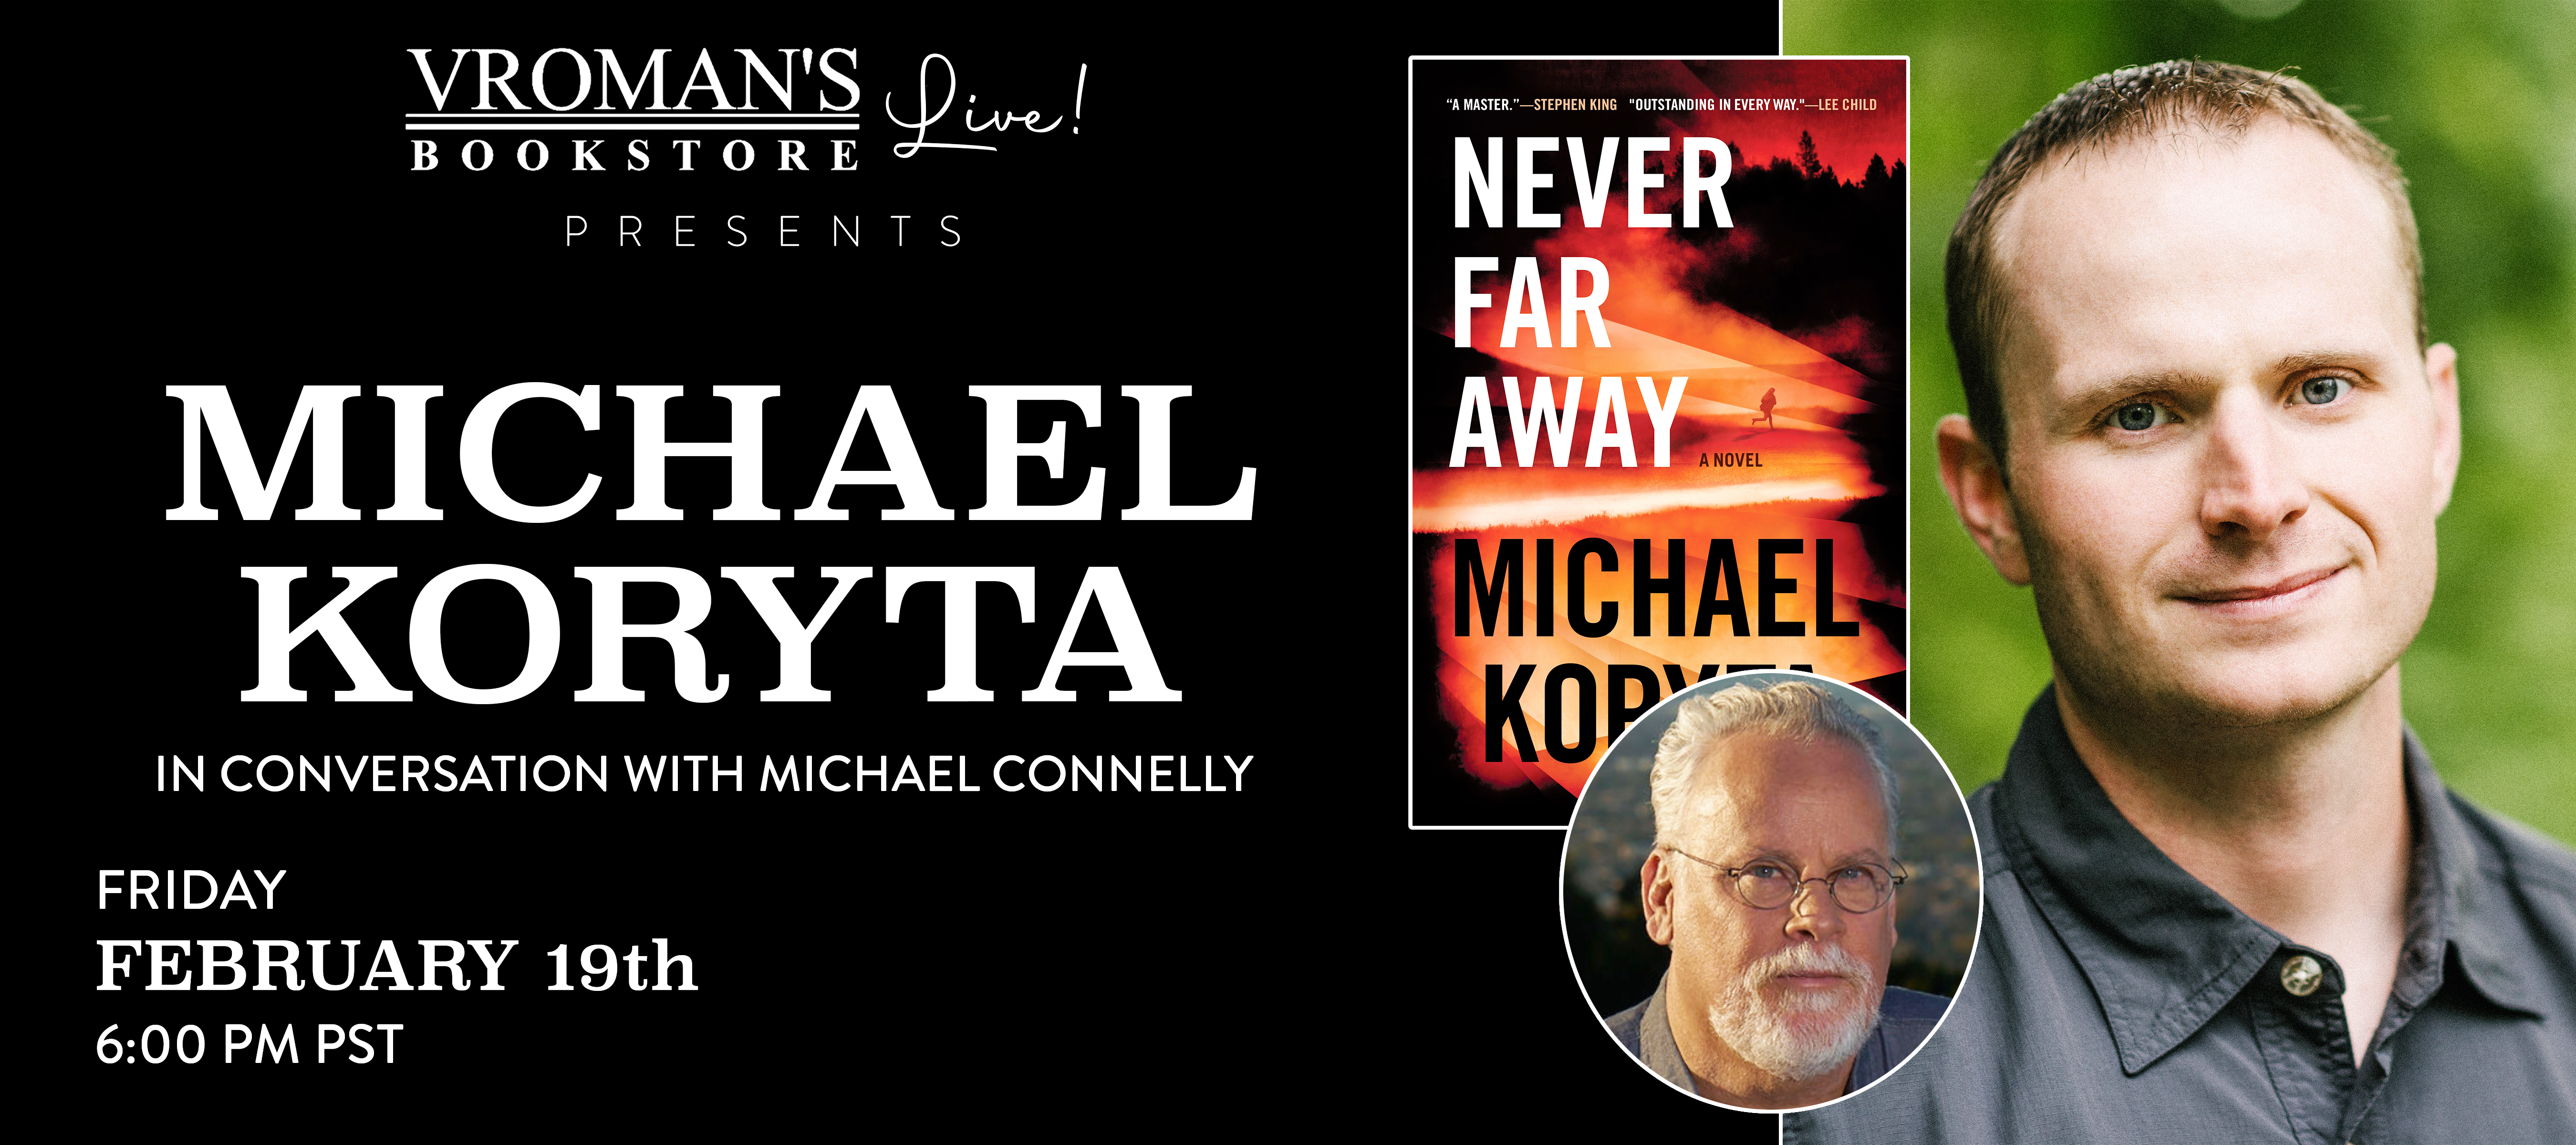 Michael Koryta in conversation with Michael Connelly on Friday February 19th at 6pm PST